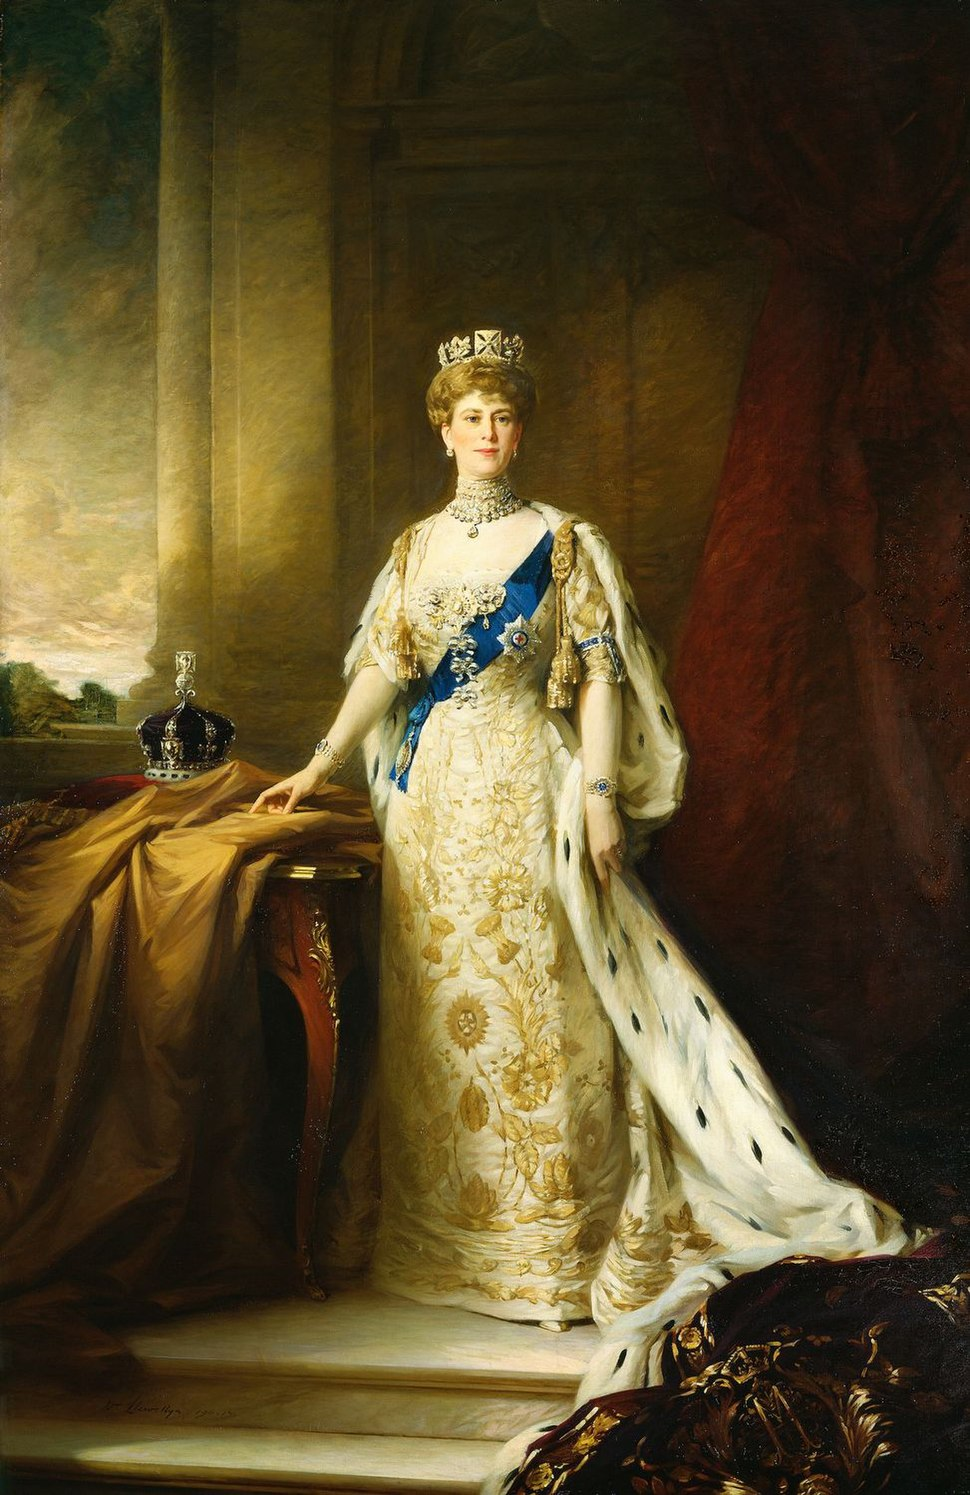 Queen Mary by William Llewellyn